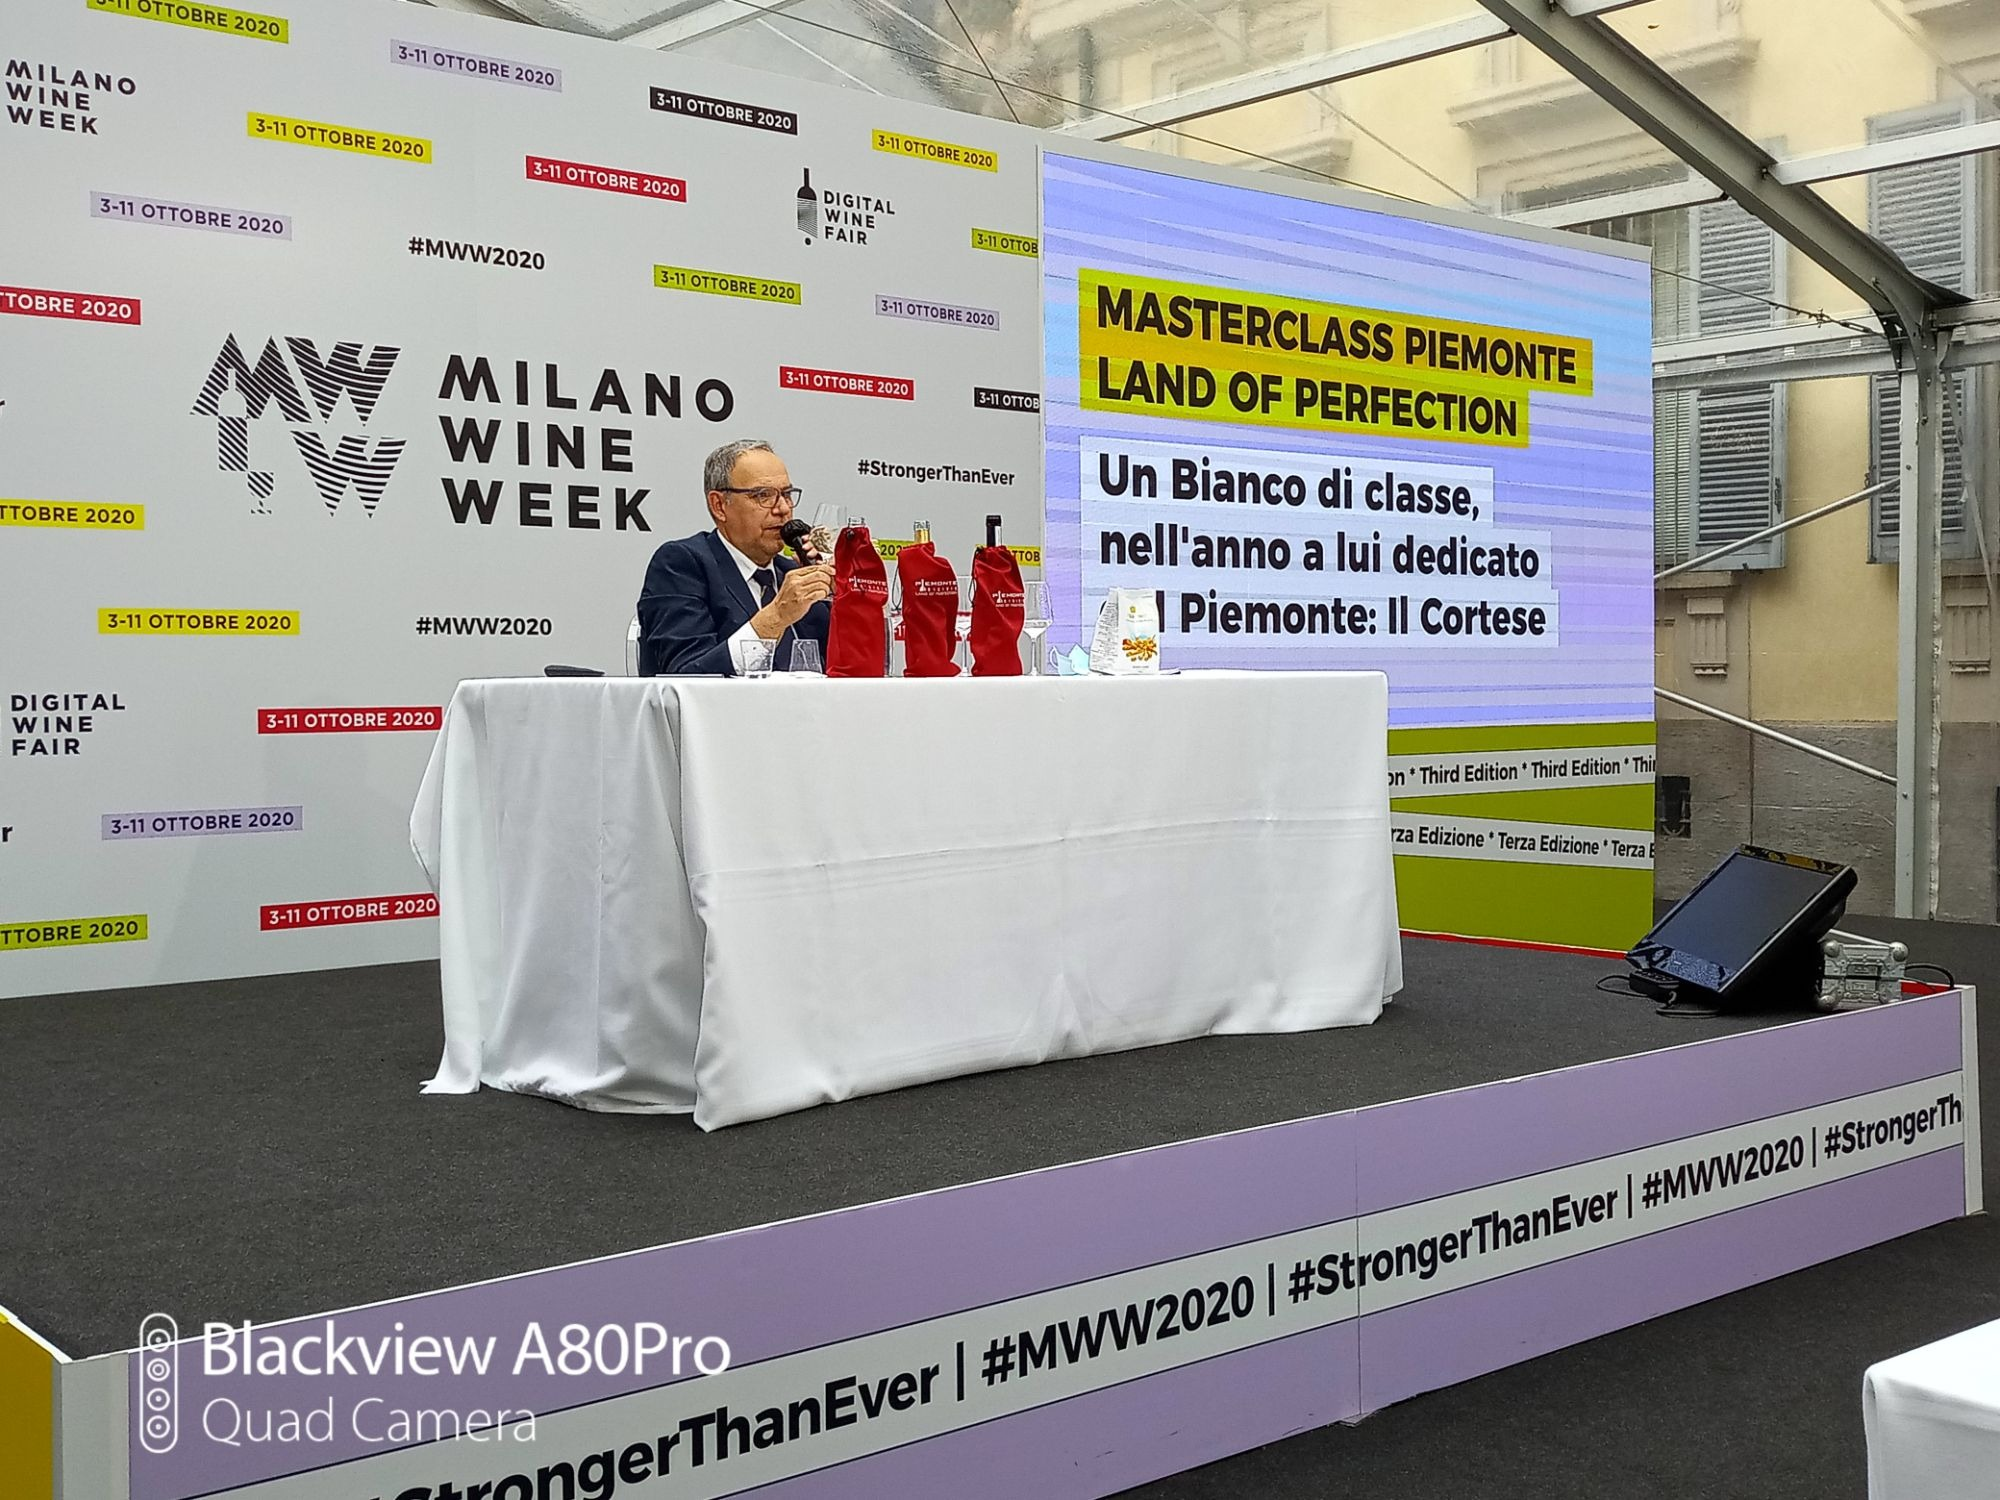 MILANO WINE WEEK 2020: LE ULTIME TAPPE DI BORGHI D'EUROPA